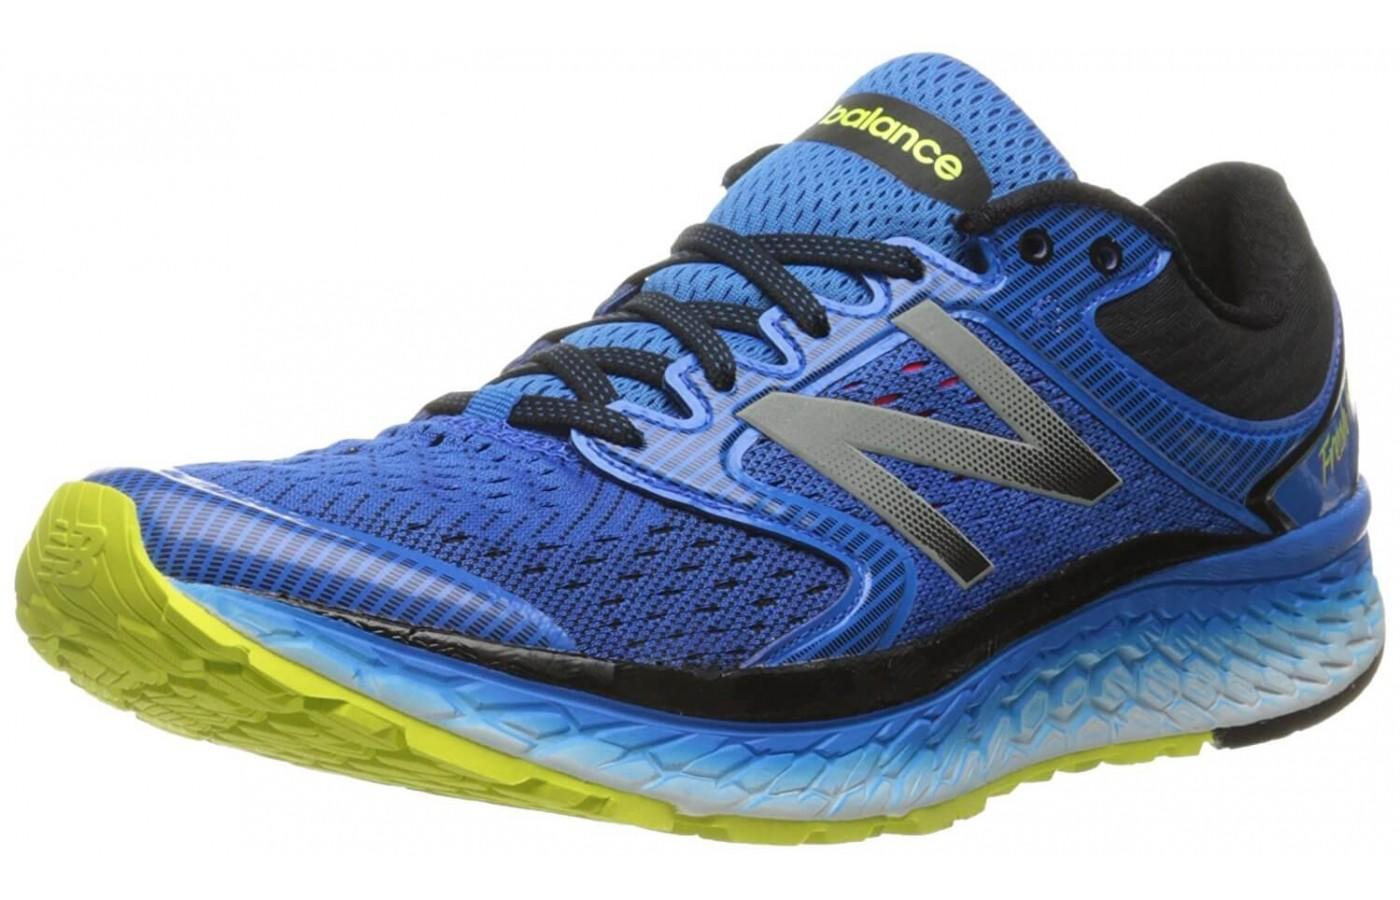 new balance fresh foam 1080 v7 test